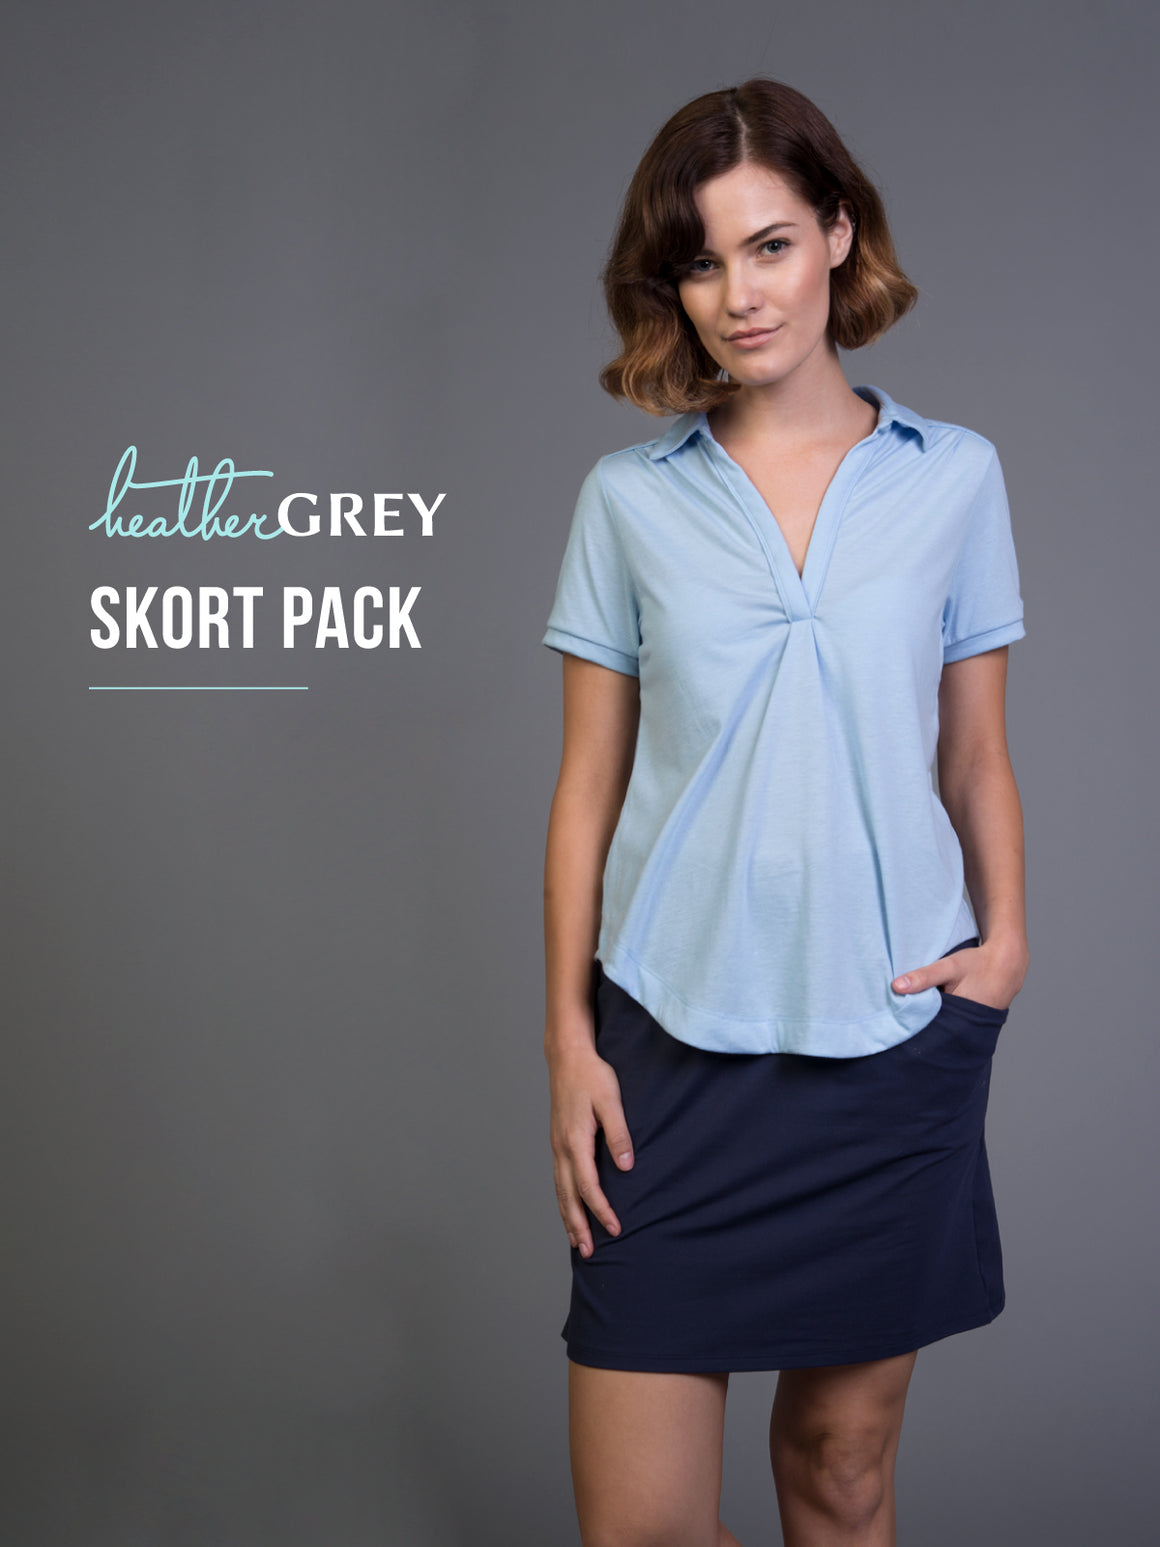 Heather Grey Mystery Skort Pack